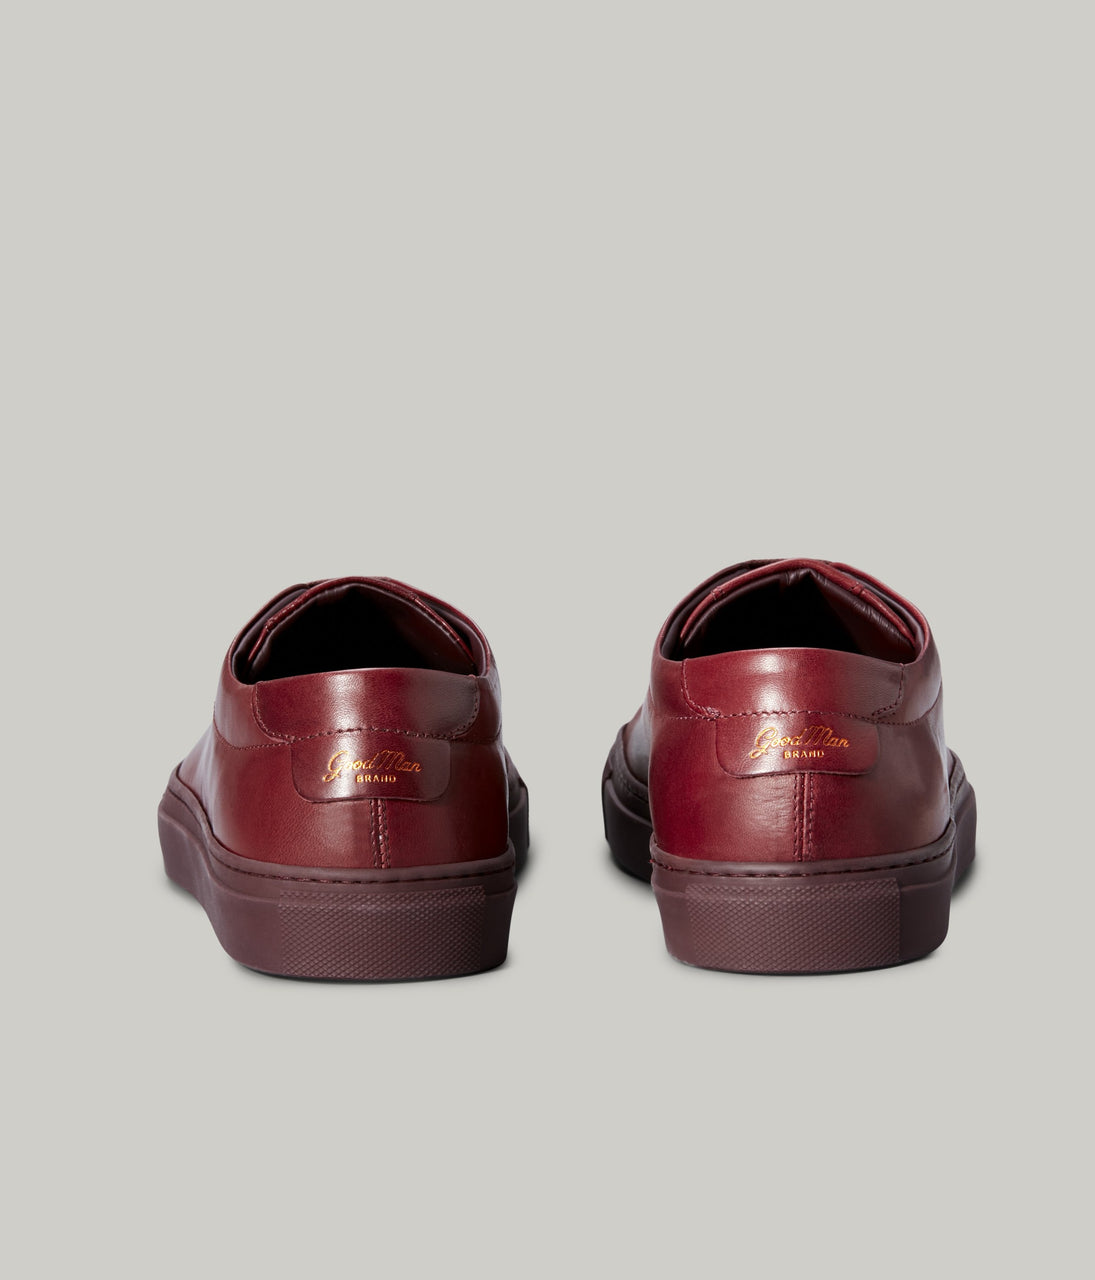 Edge Lo-Top Sneaker - Burgundy - Good Man Brand - Edge Lo-Top Sneaker - Burgundy